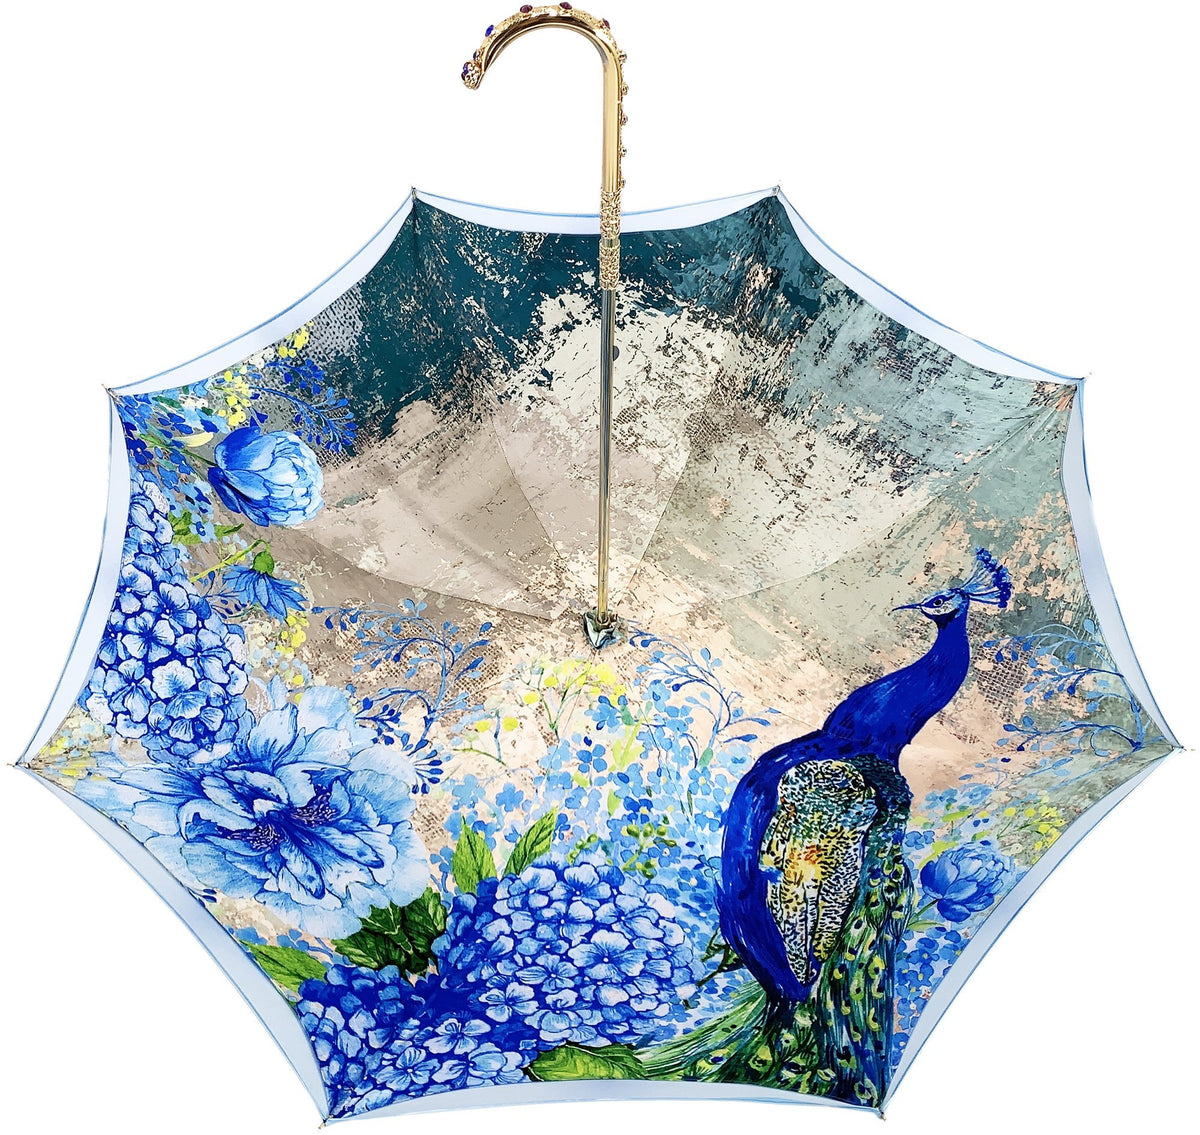 IL MARCHESATO PEACOCK UMBRELLA